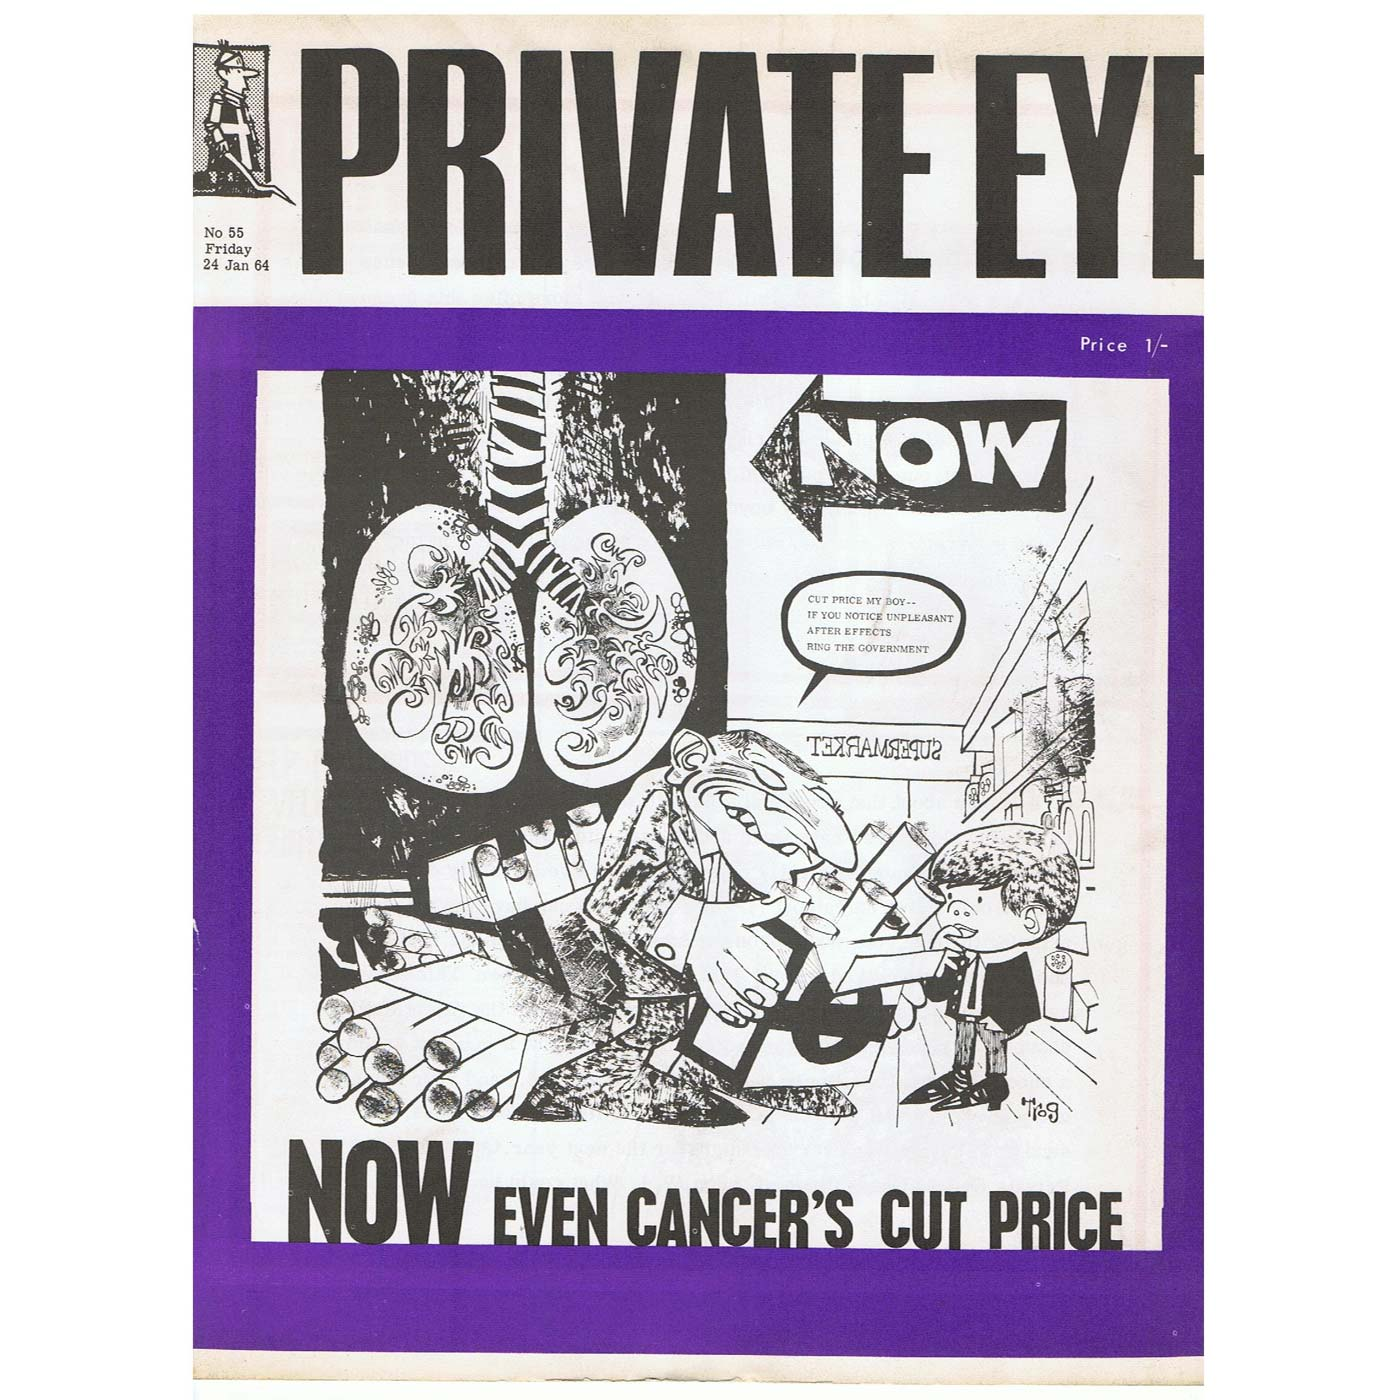 24th January 1964 – Private Eye